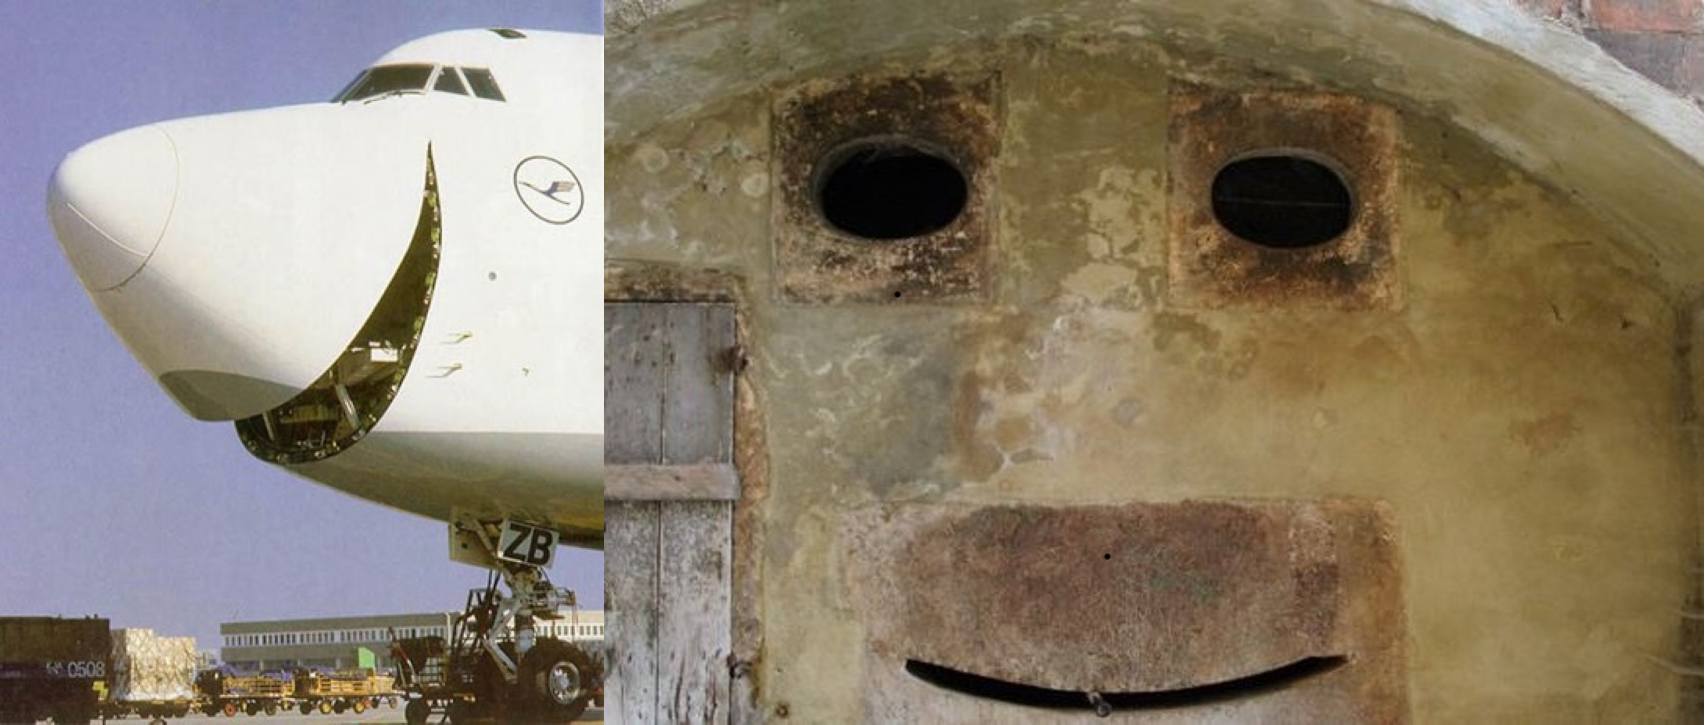 I see faces.